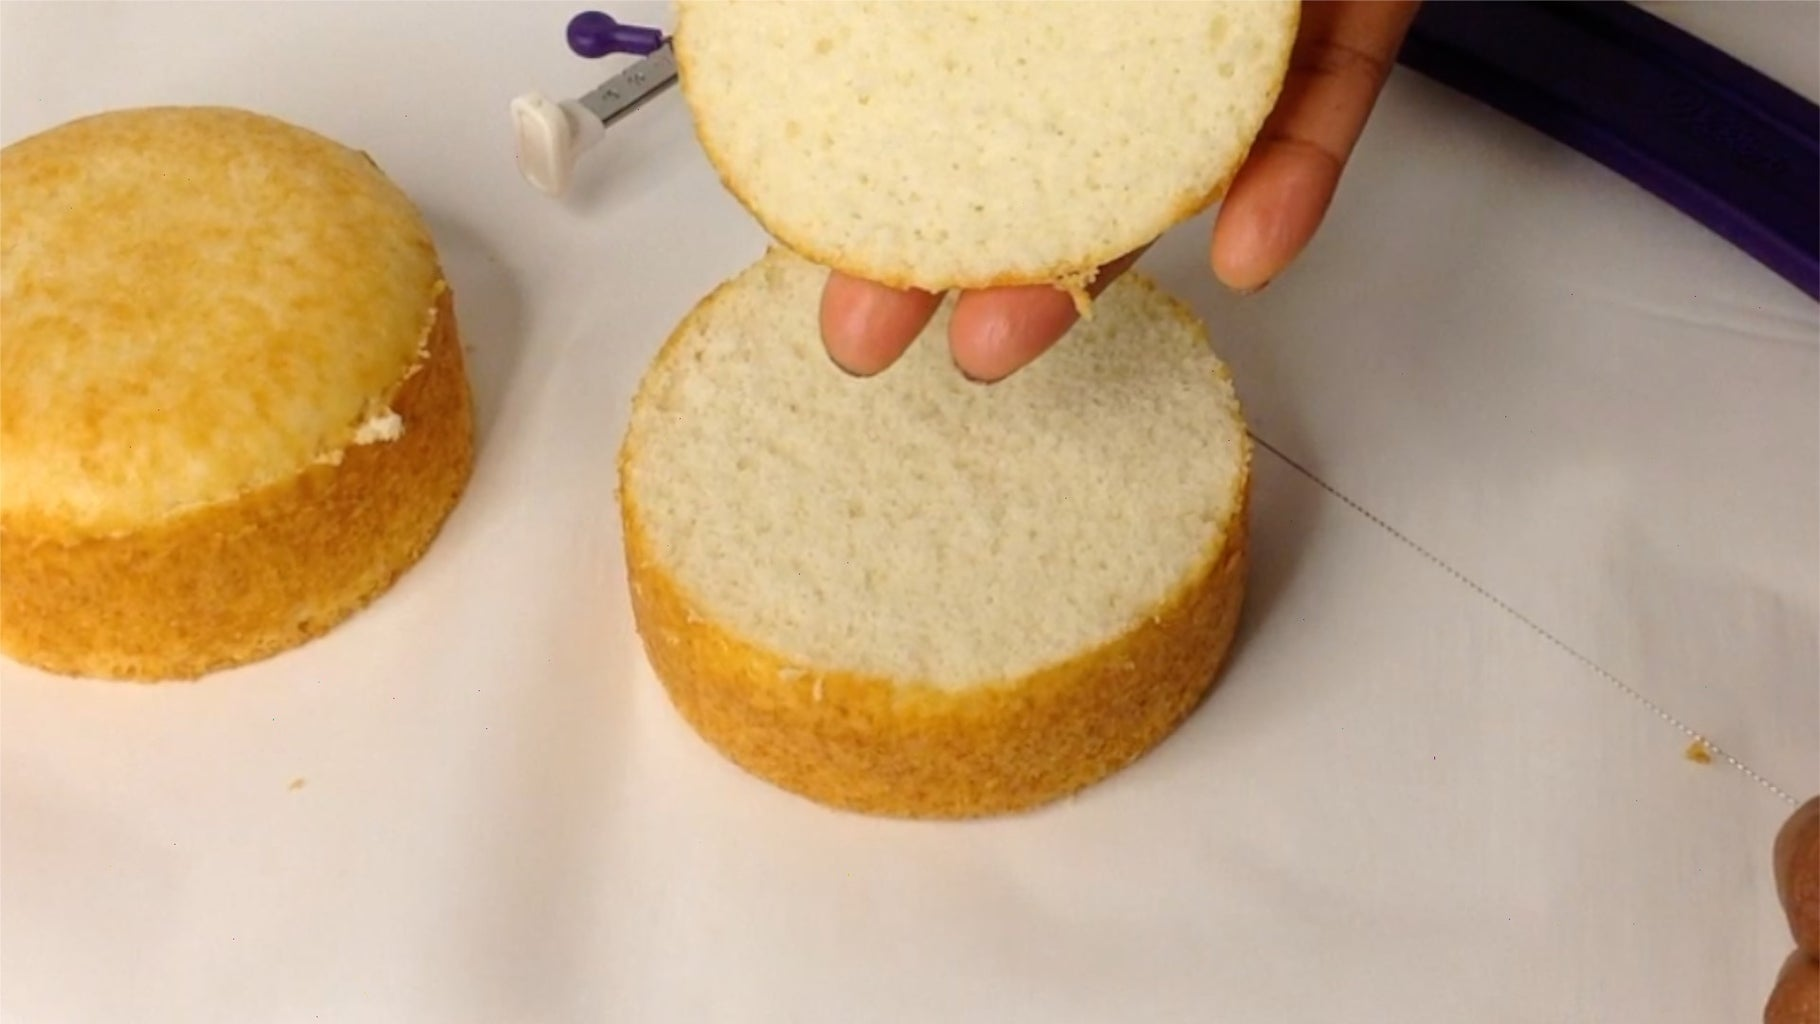 Step 2: Prepare Your Cake for Decorating